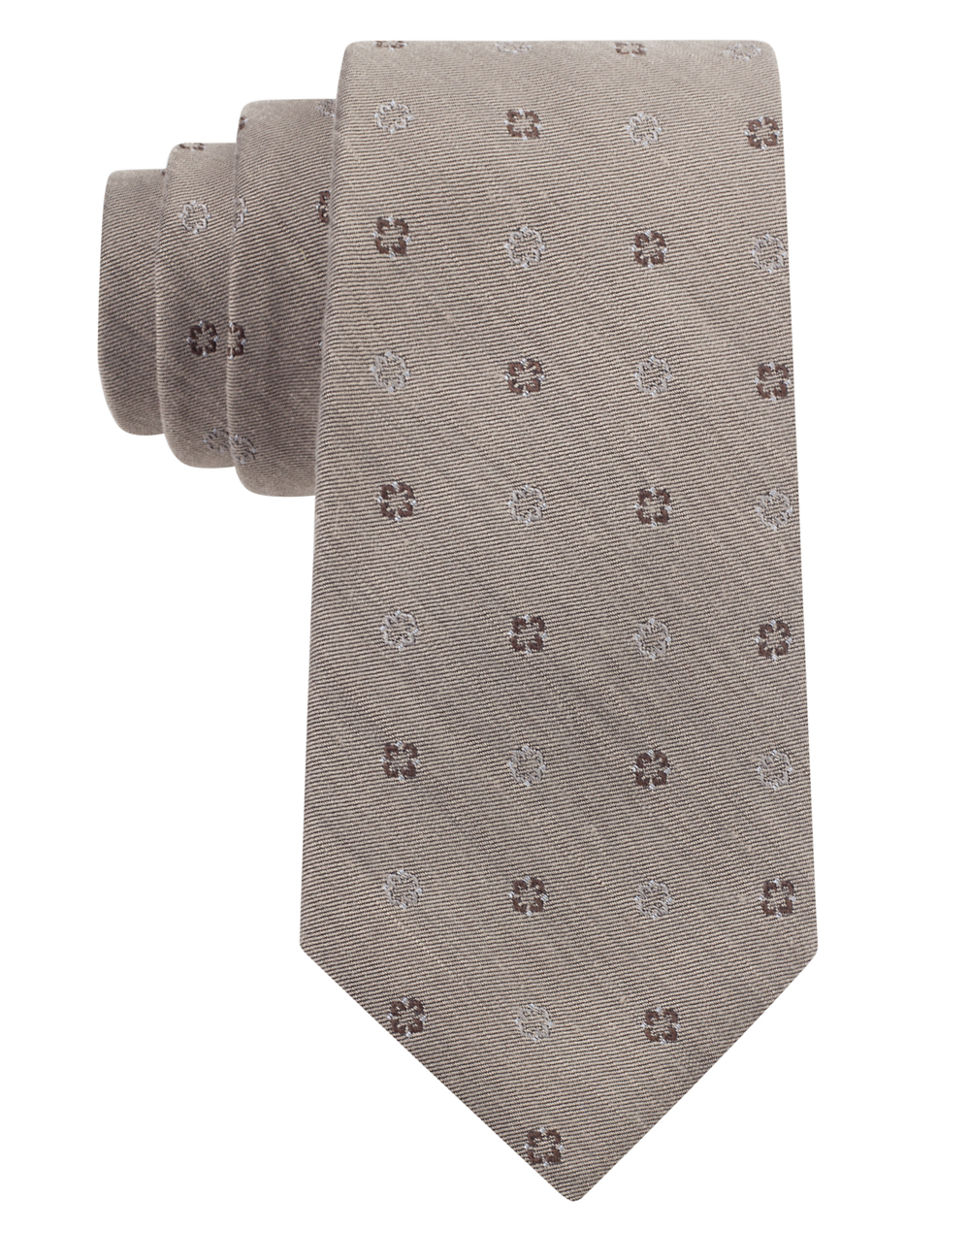 Dkny silk blend floral embroidered tie in khaki for men lyst